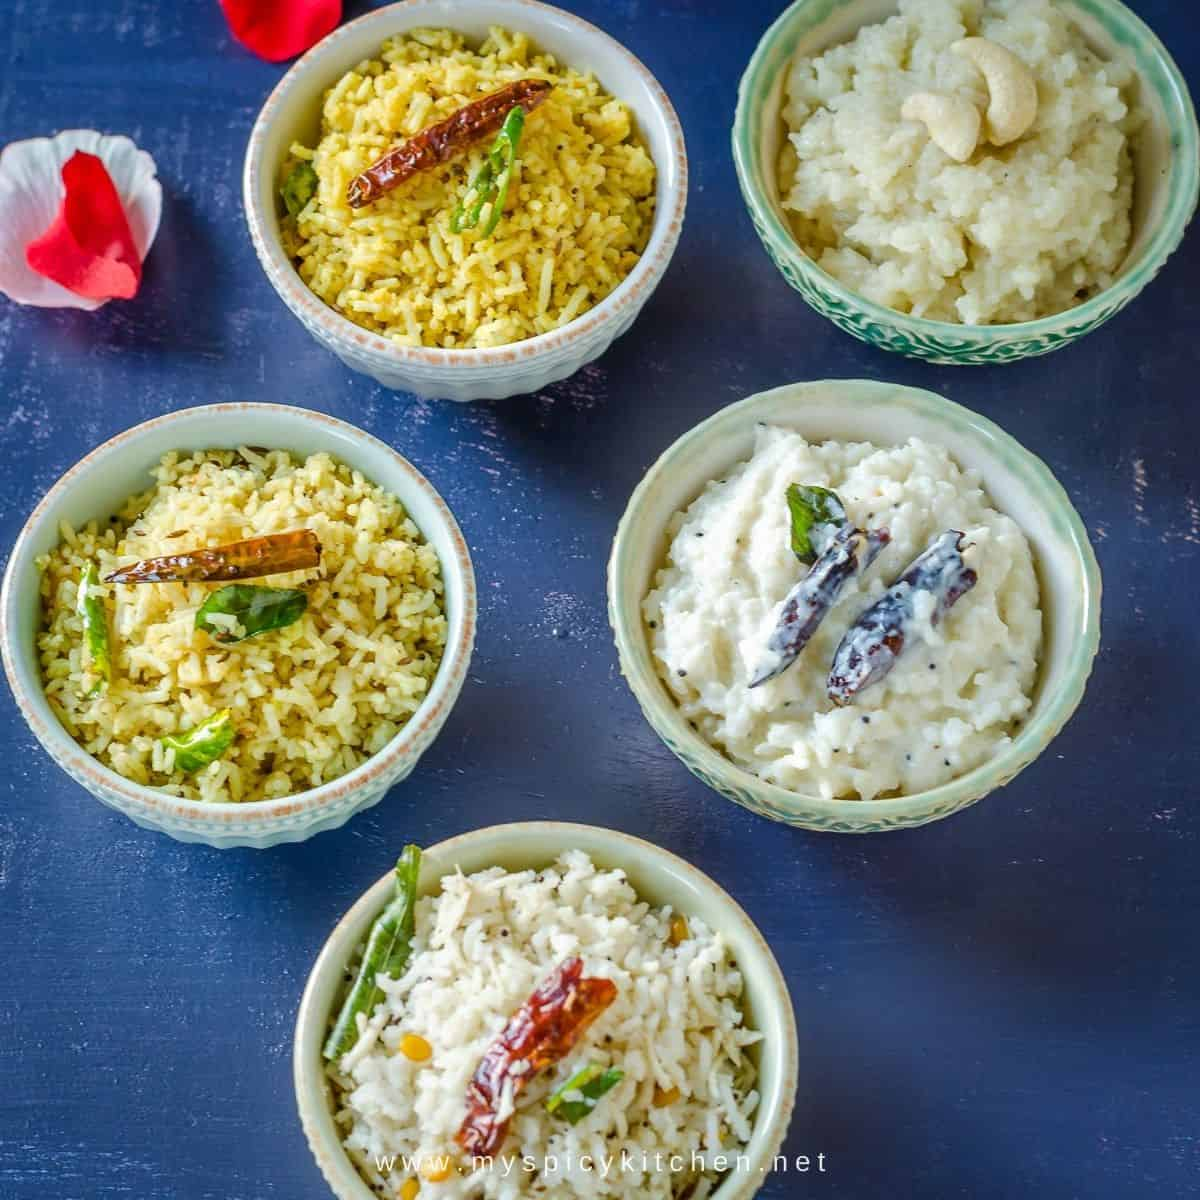 5 bowls of different flavored rice for pedha bathukamma